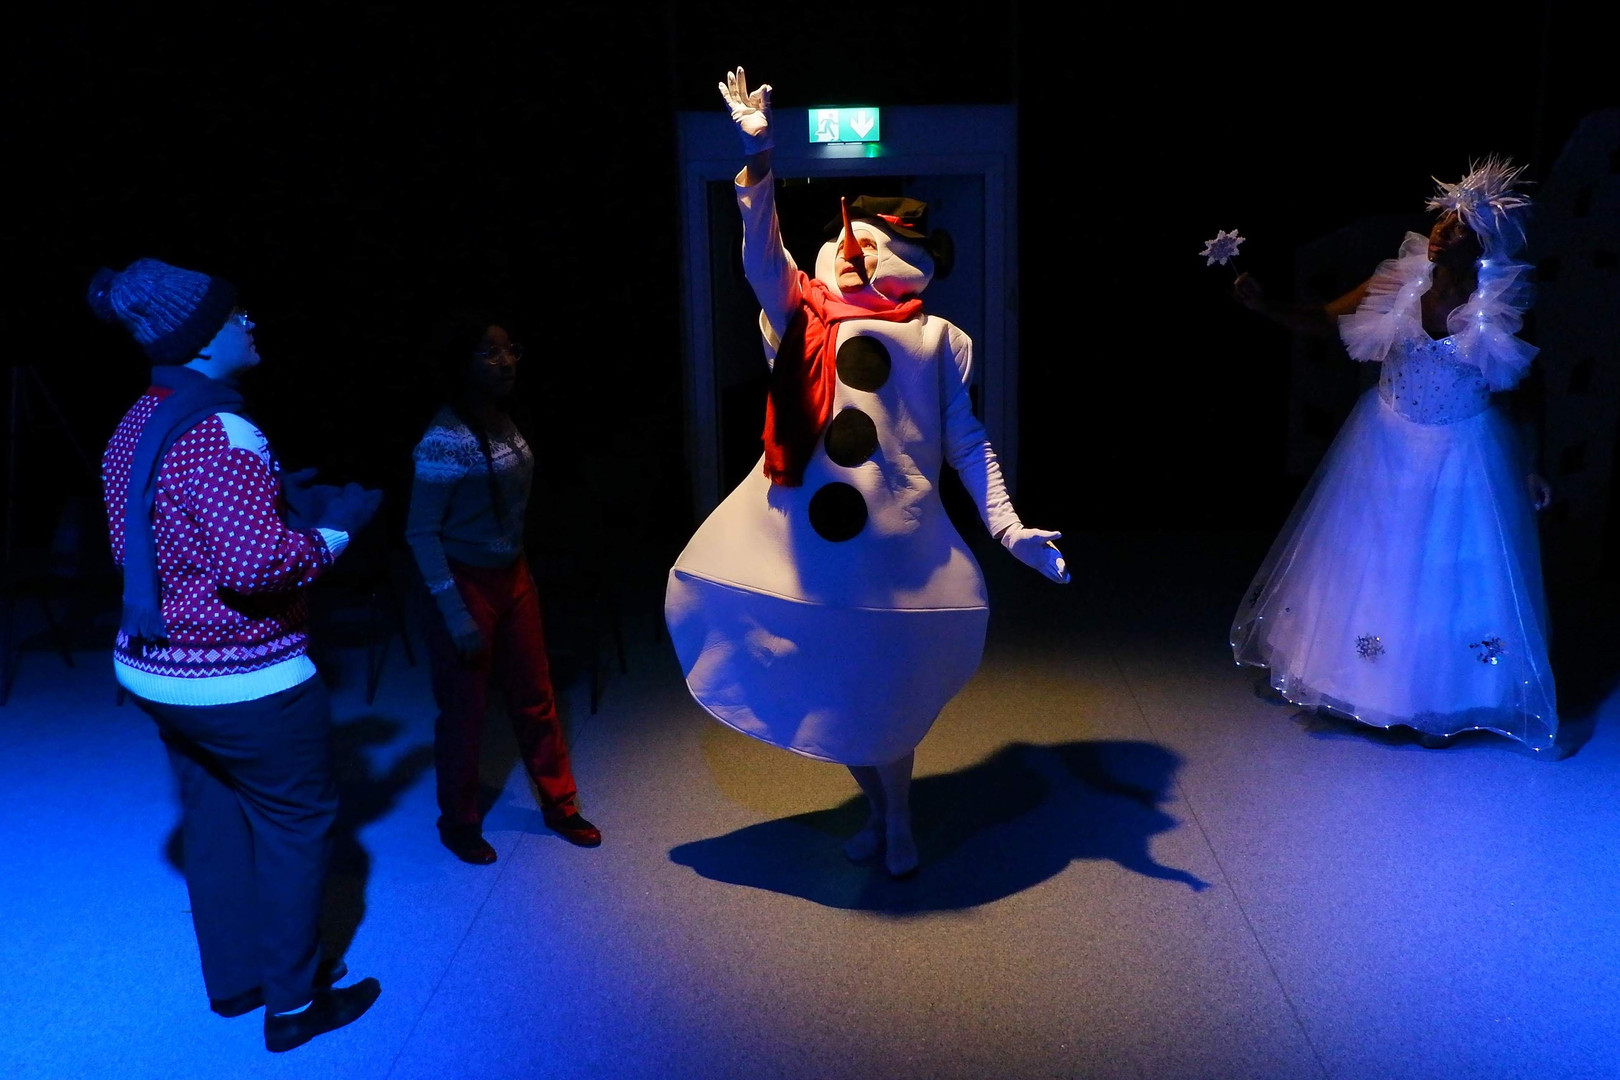 Snow Queen (Shireenah Ingram), Snowman (Hjalmar Norden), Kai (Bill Hastings) and Gerda (Jimand Allotey)